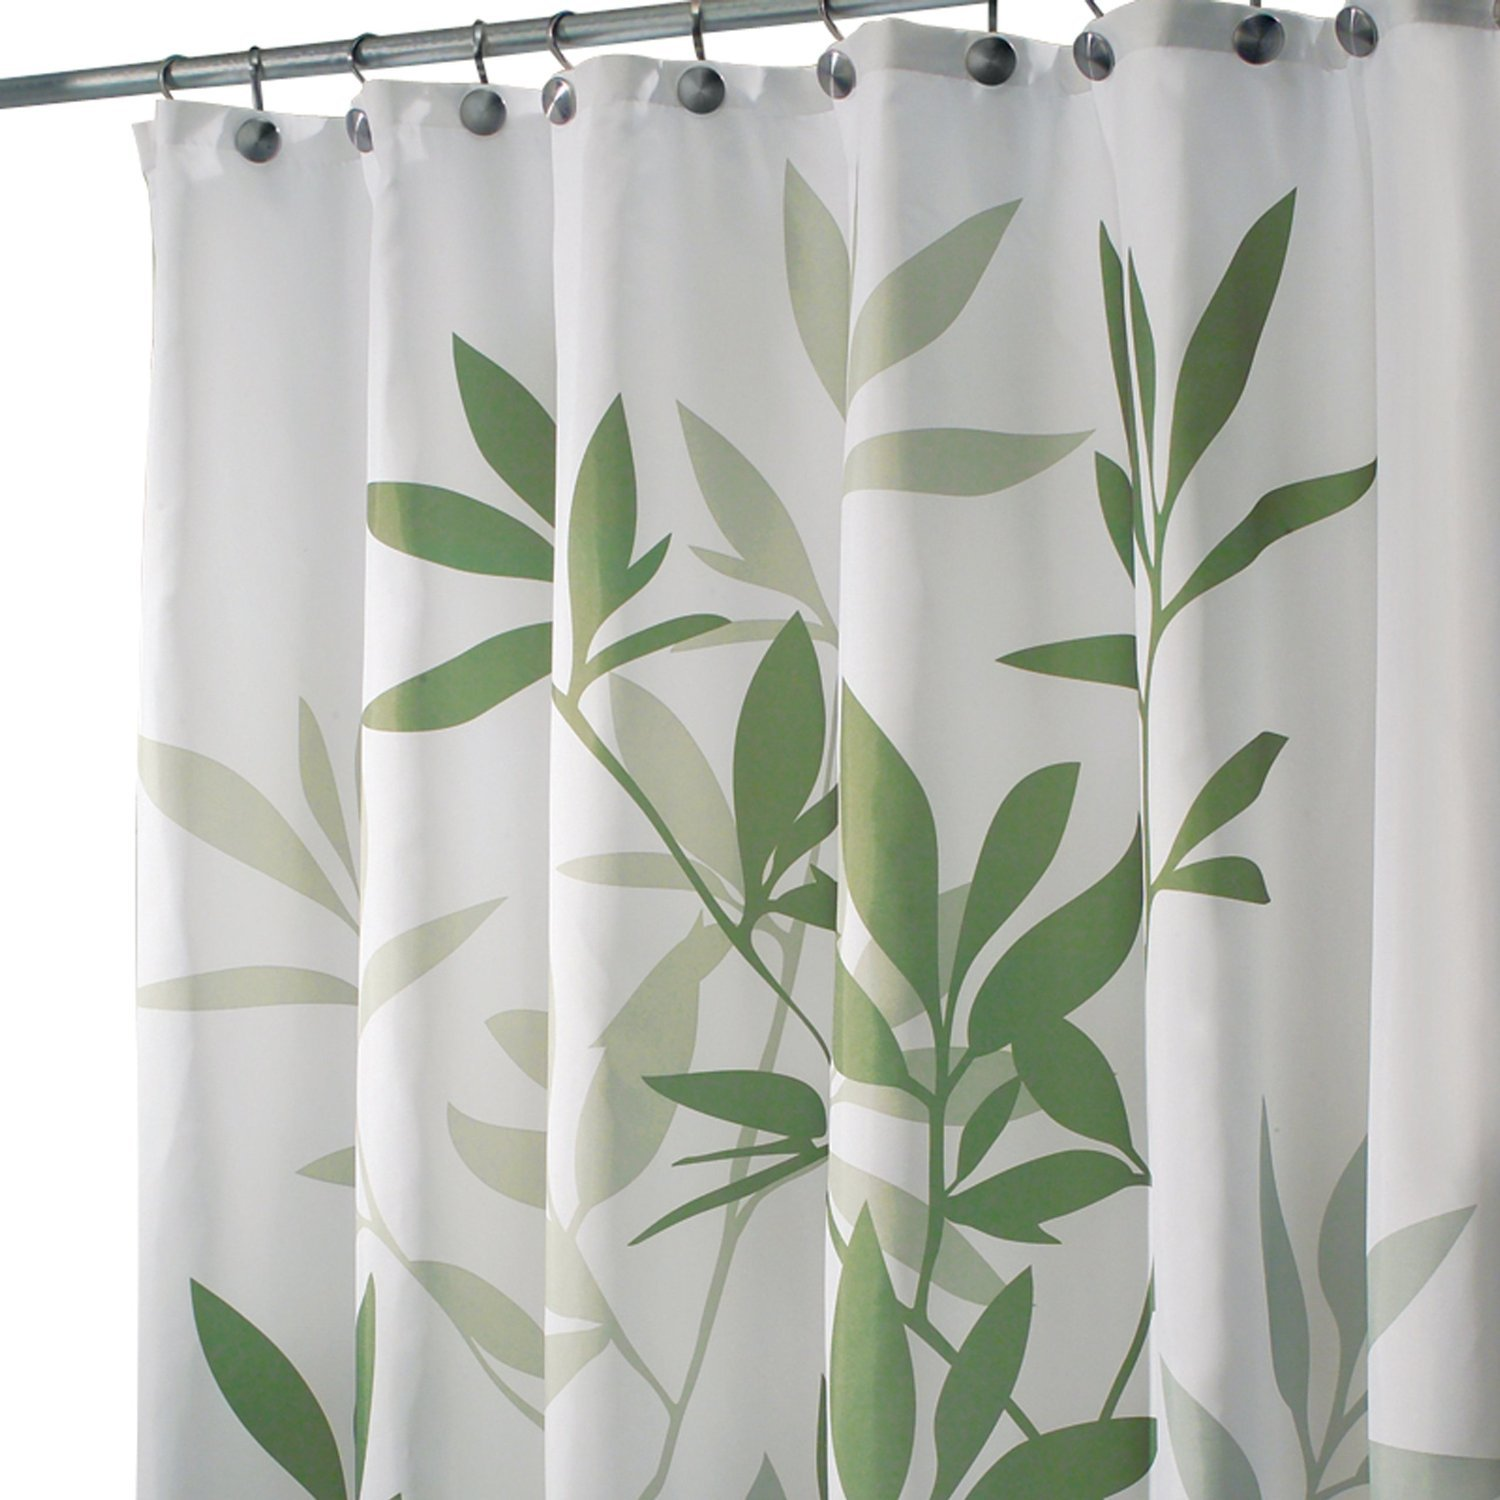 garden kitchen ca shower amazon curtains lenox moonlit home kkcql dp curtain